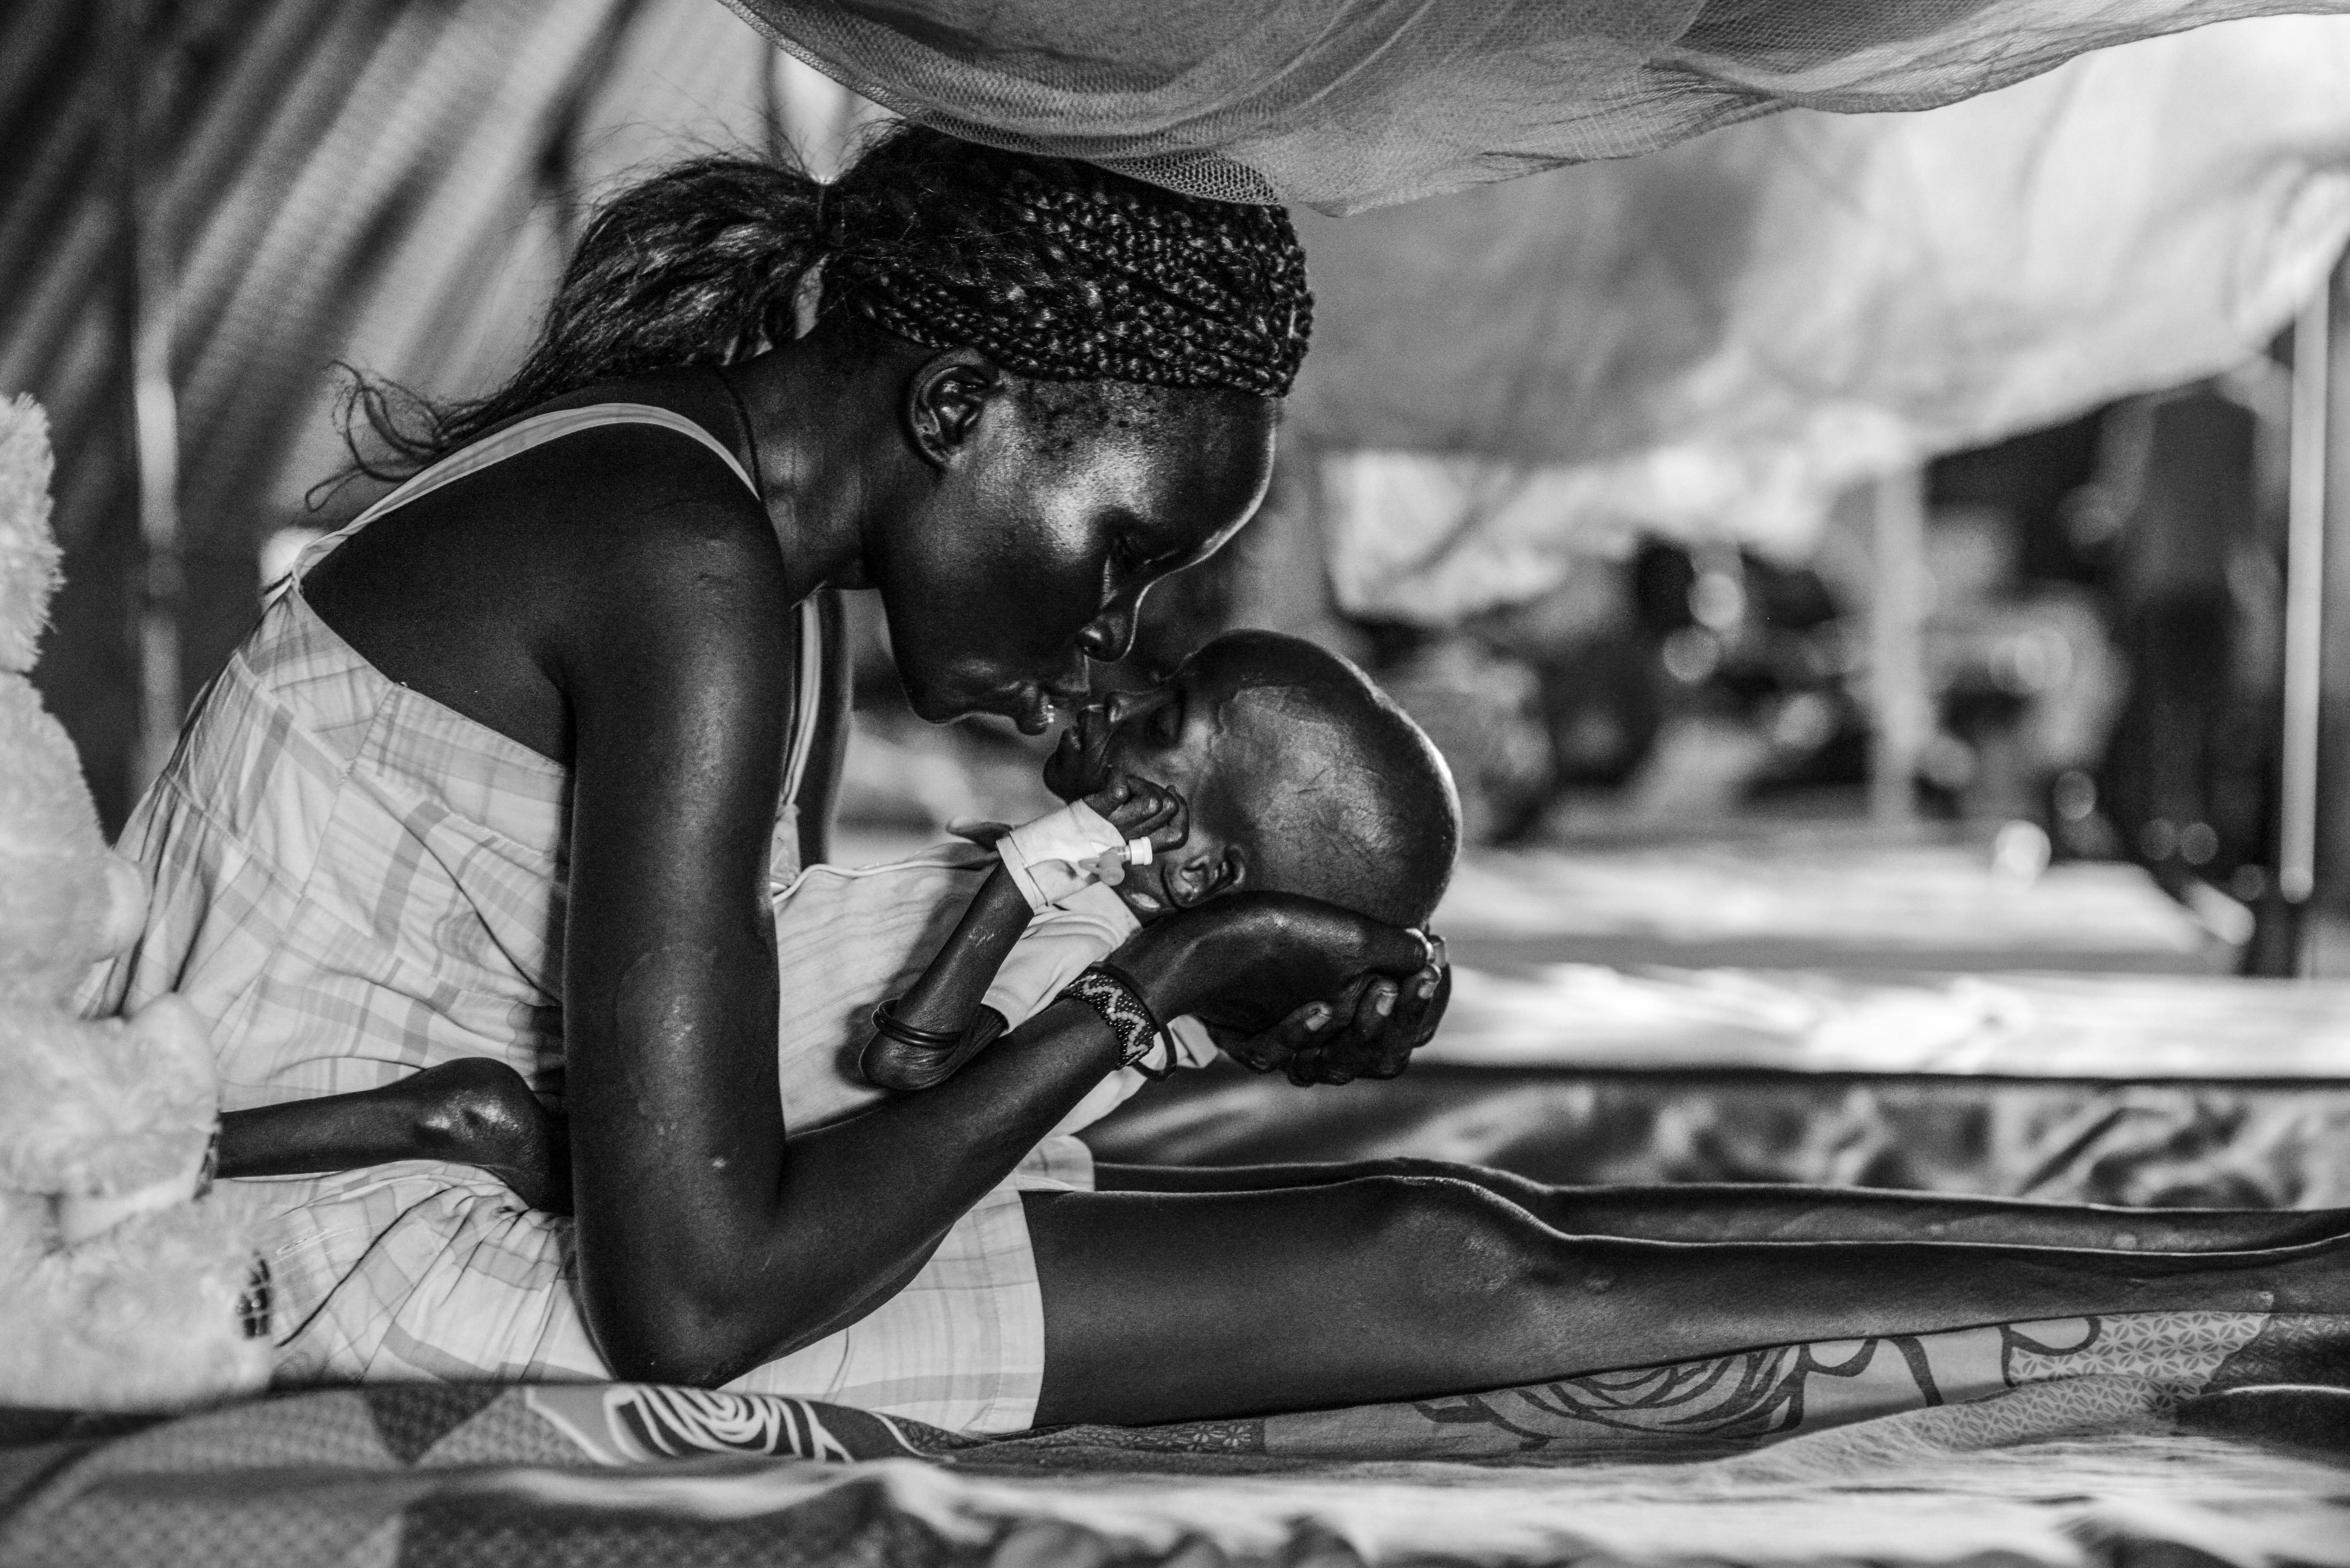 Jal Puok, 1, who suffers from severe acute malnutrition, is embraced by his mother Eliza, 28. Photo by Sebastian Rich for UNICEF